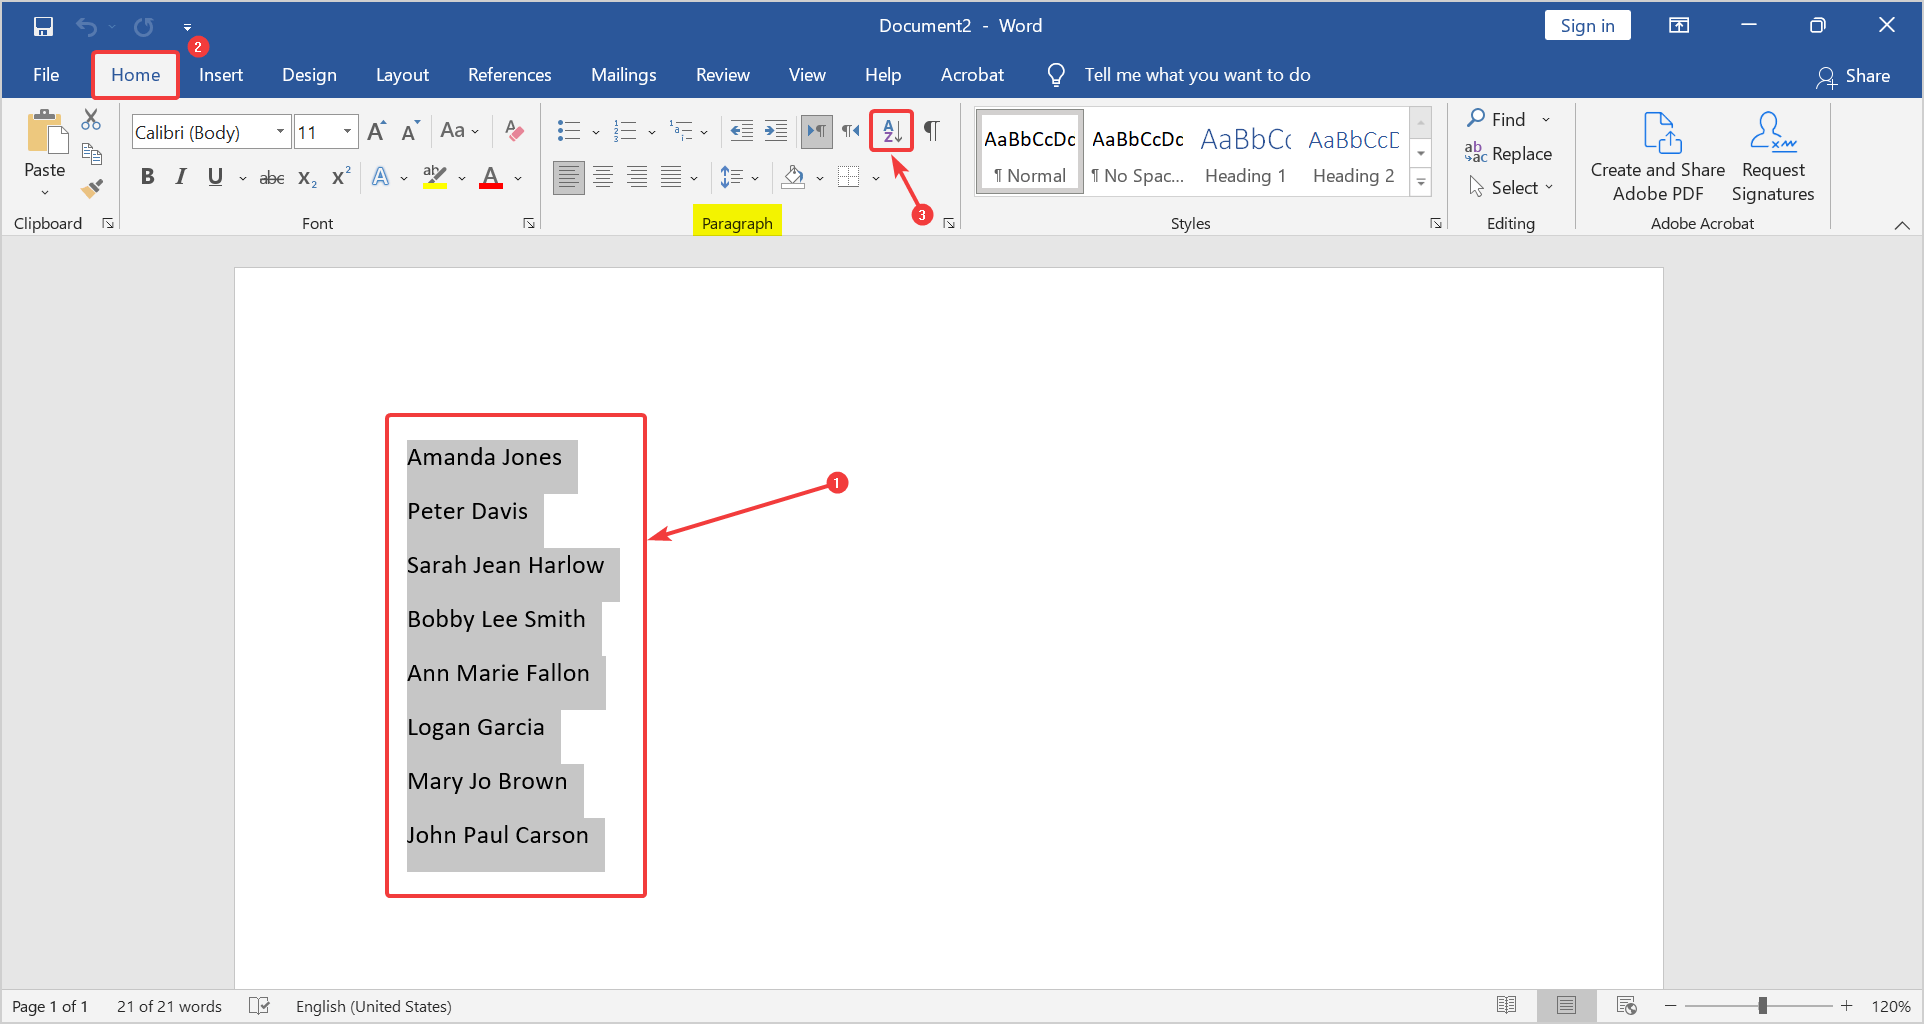 Selection of names - Go to the Home tab and press on the sort icon. How to sort a list of names alphabetically in word